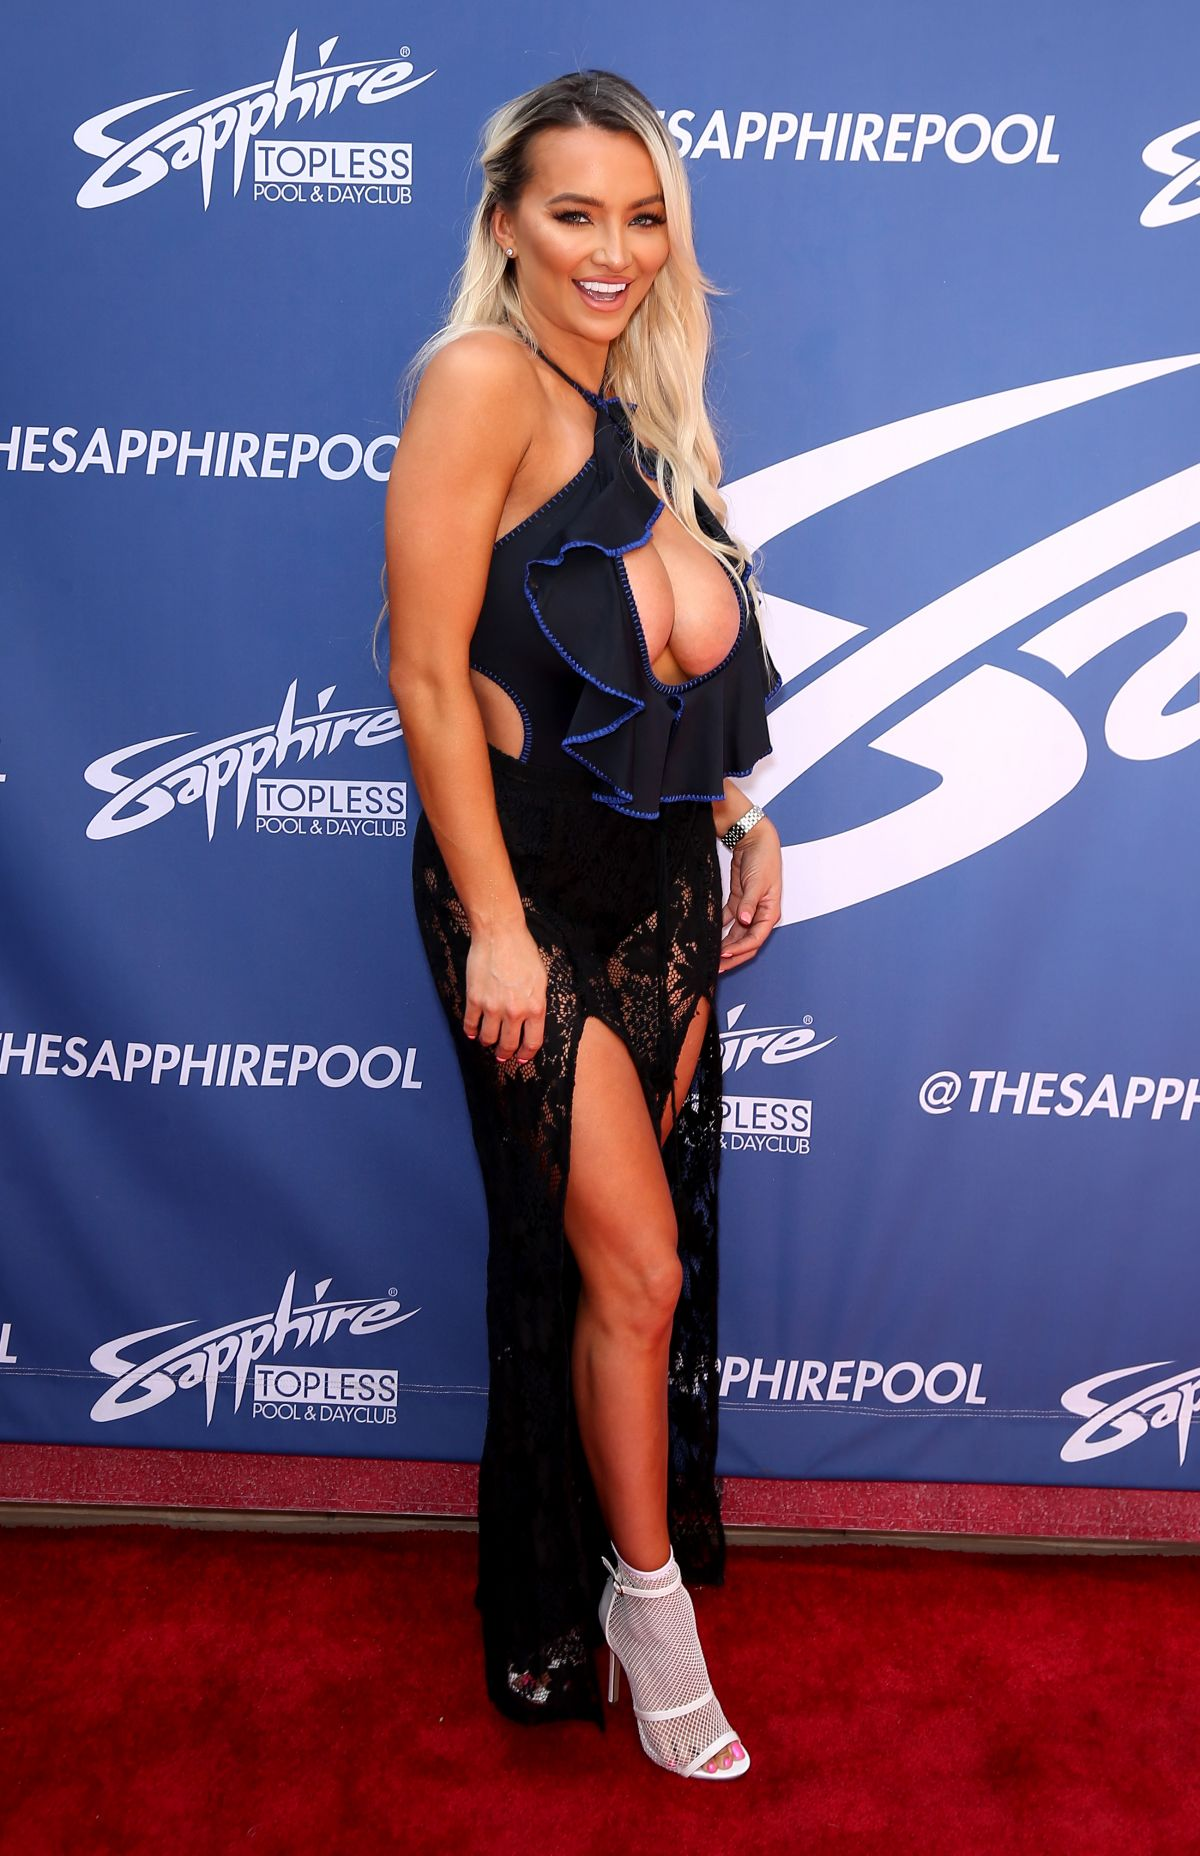 Lindsey Pelas Attends the Sapphire Topless Pool and